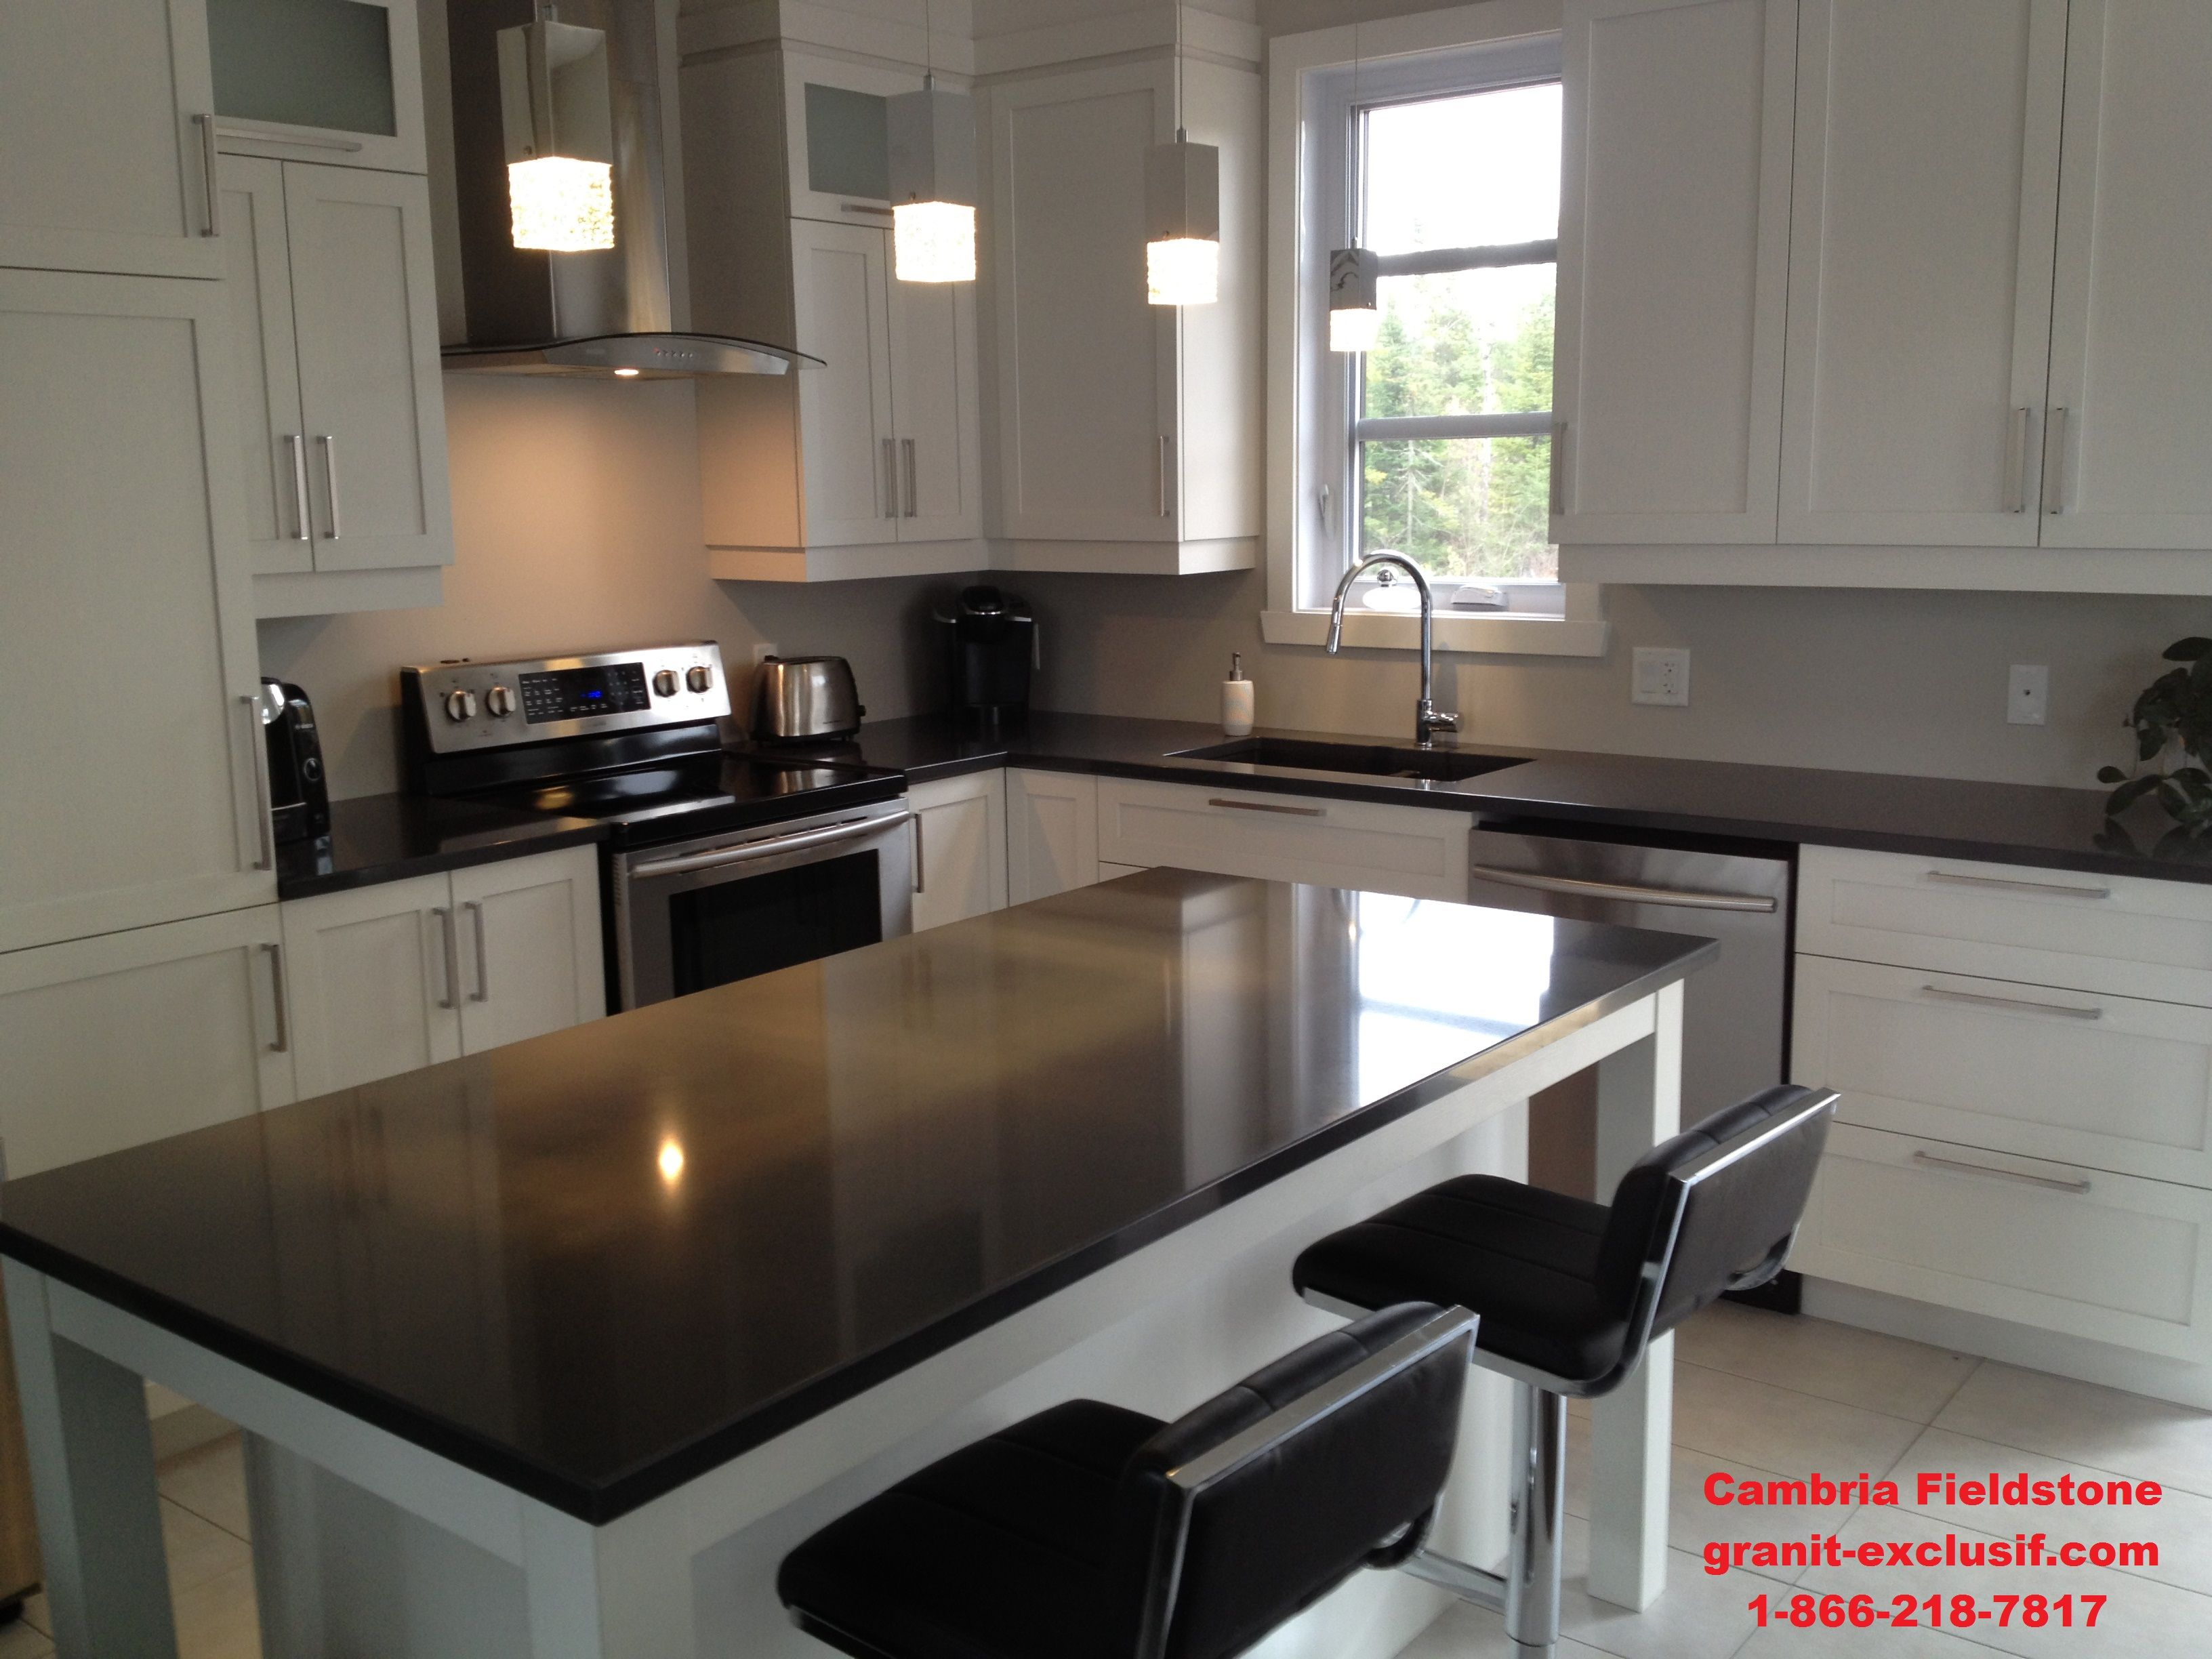 Cambria Fieldstone Home Kitchens Kitchen Kitchen Projects